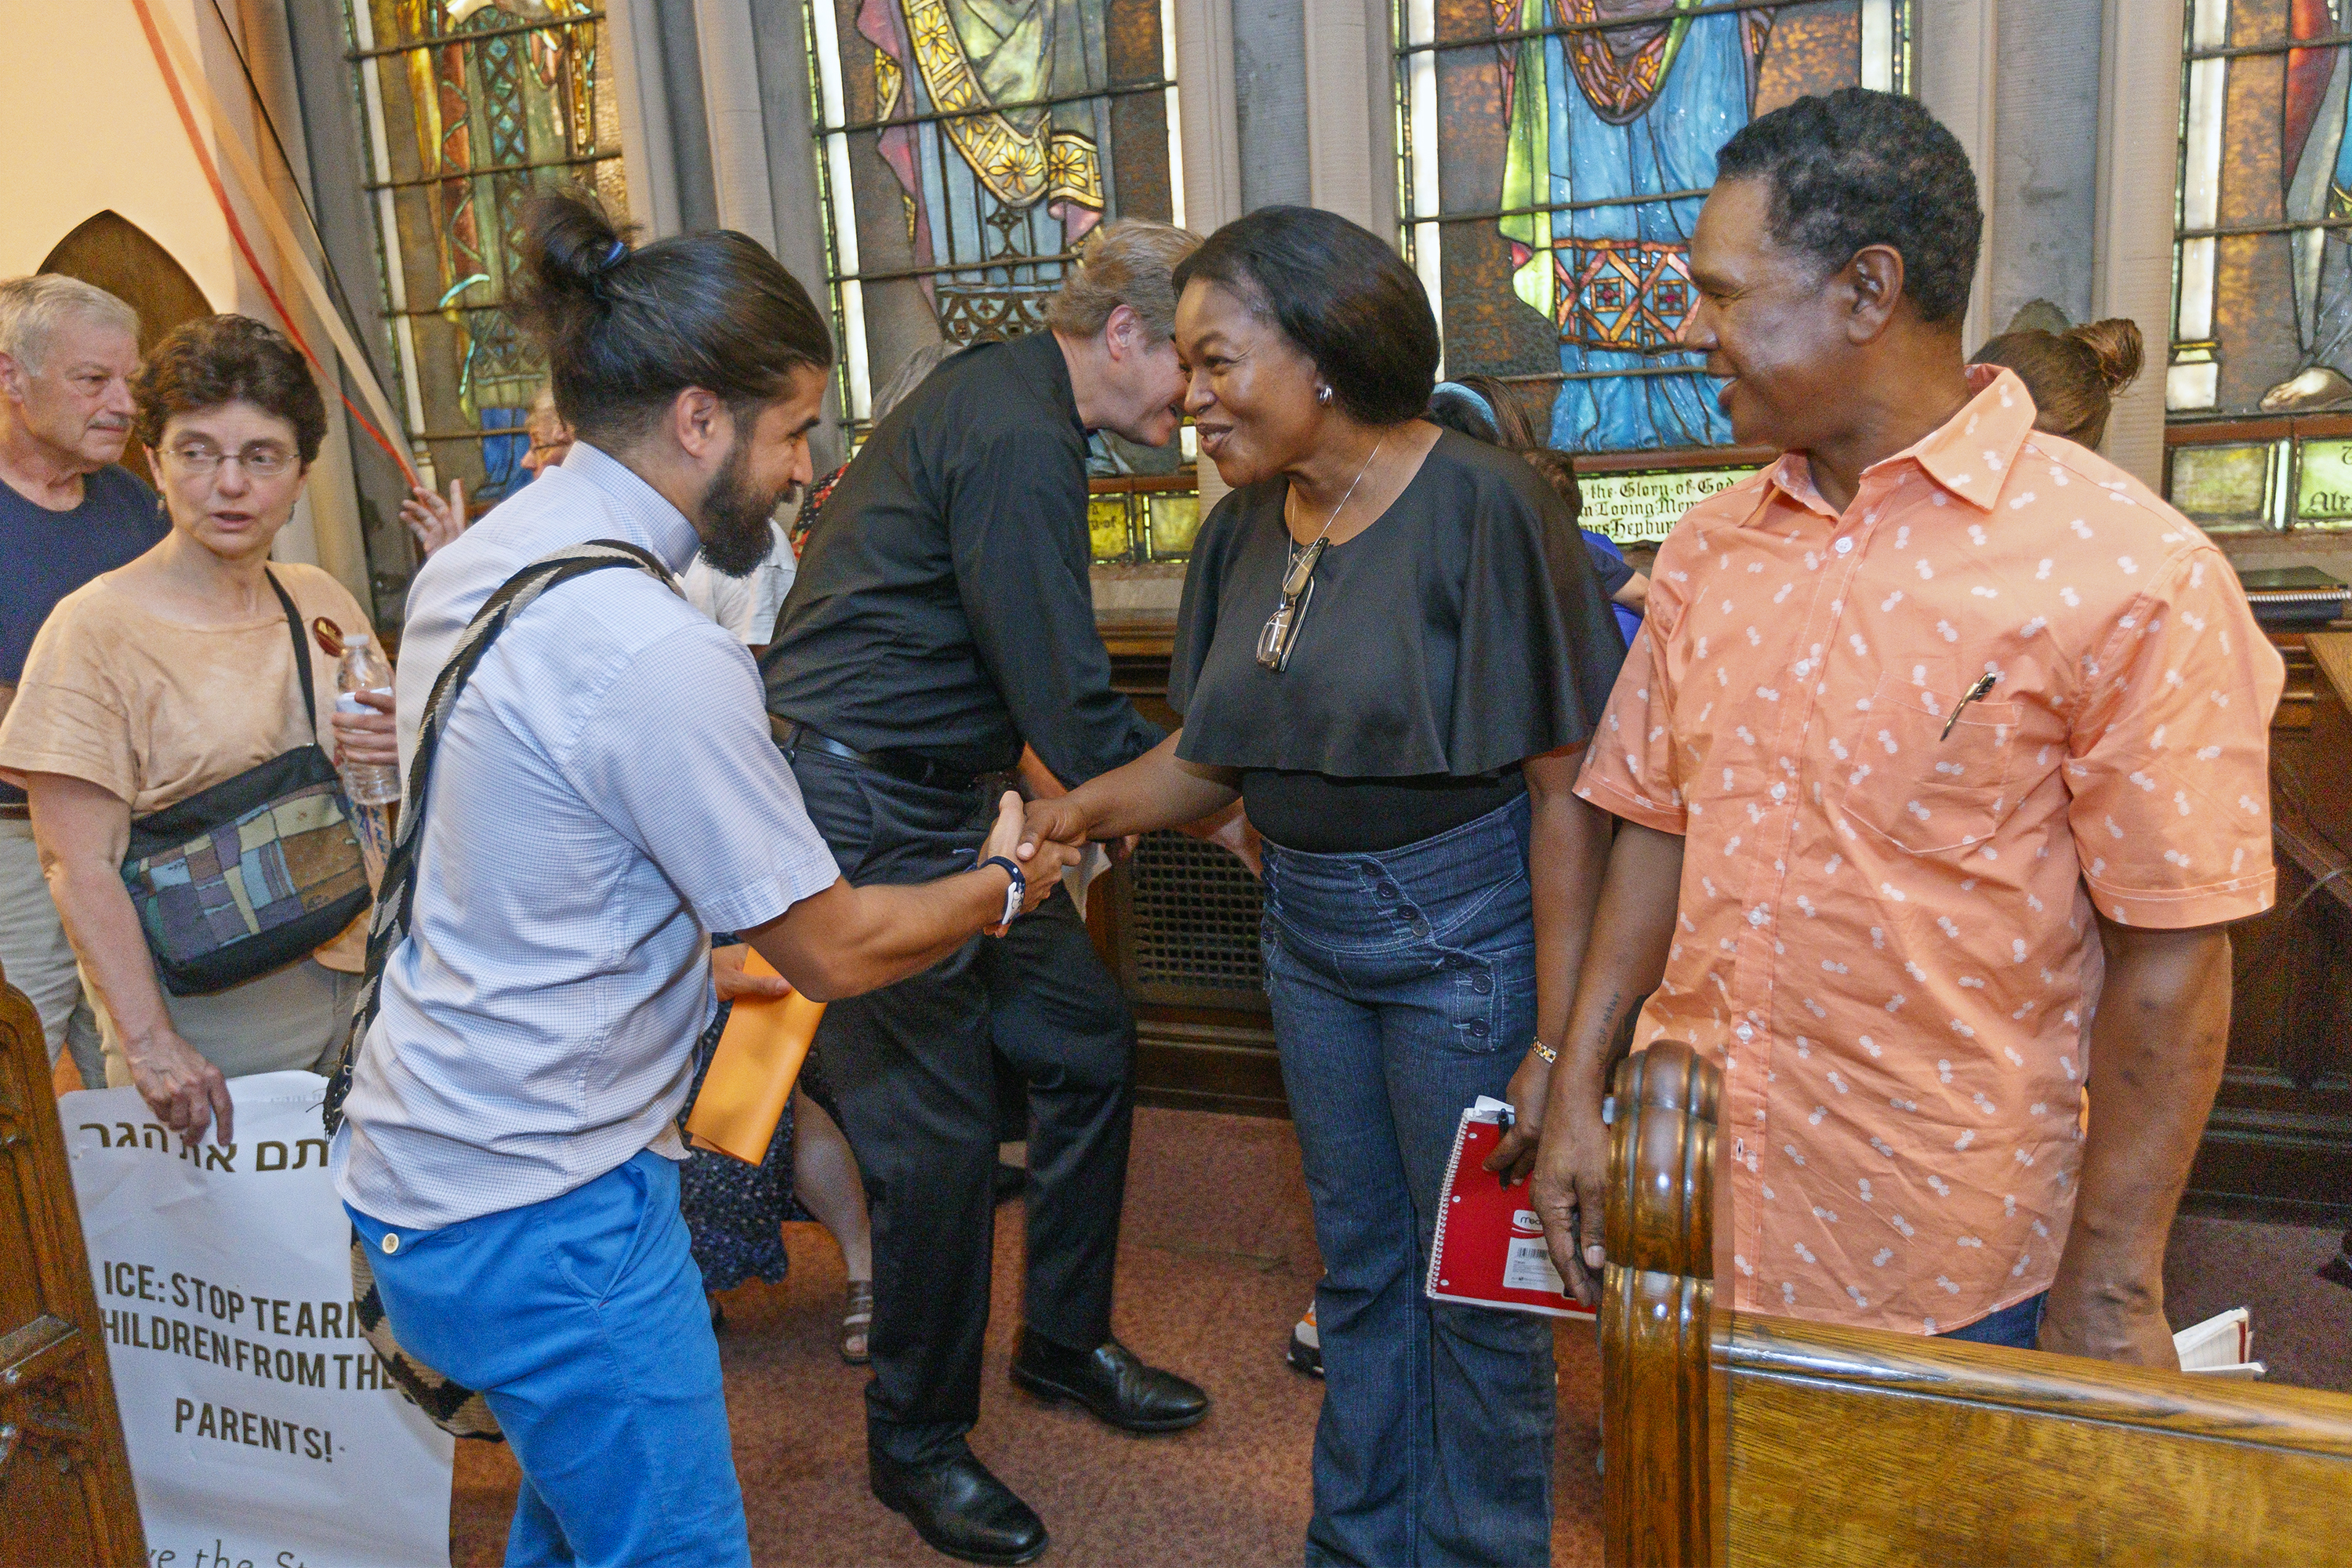 Oneita Thompson, center, and her husband Clive Thompson, right, of South Jersey and Jamaica, are greeted by well wishers at the First United Methodist Church of Germantown on Wednesday.